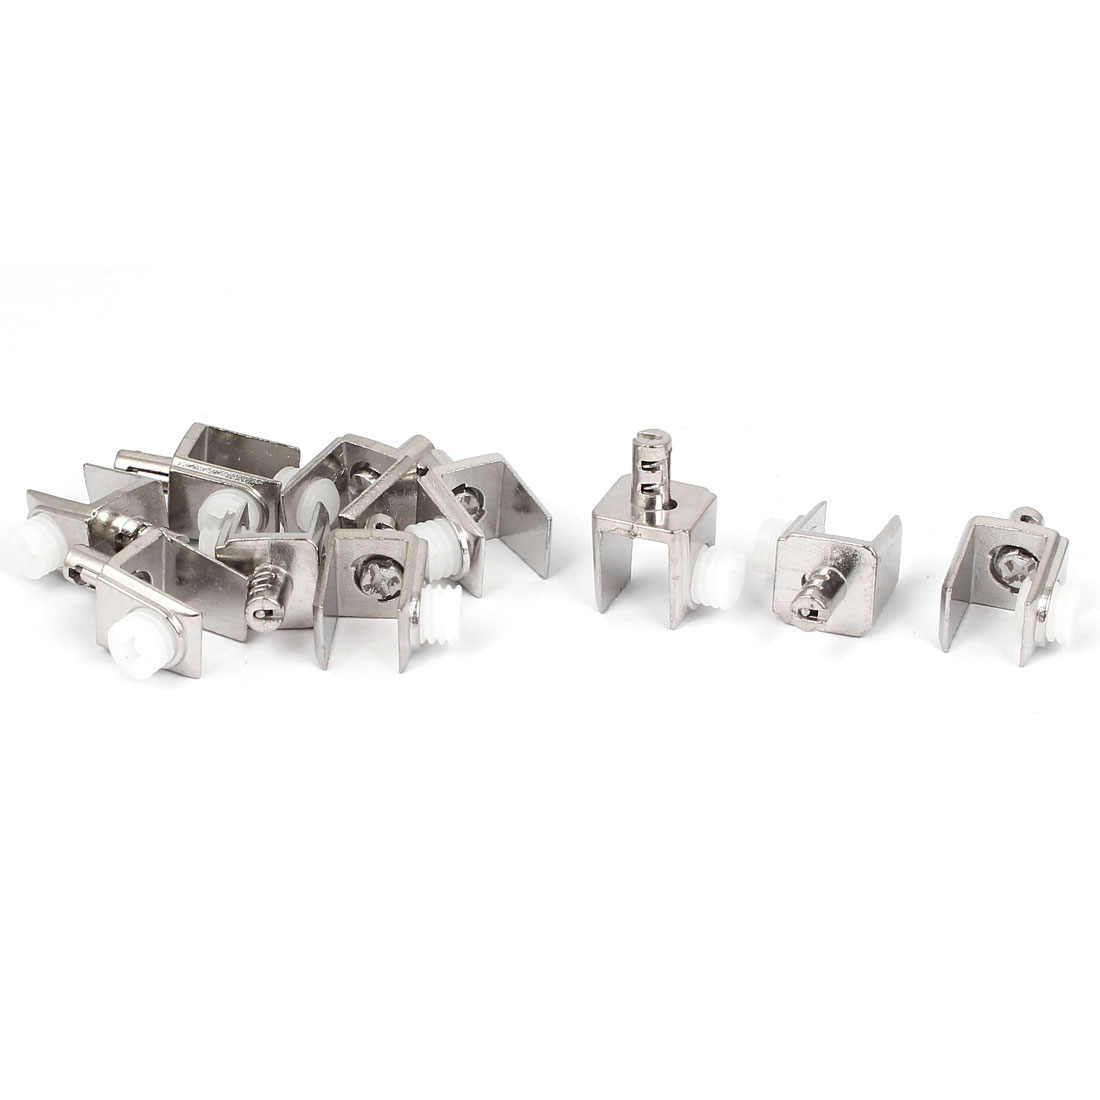 3mm-8mm Thickness Adjustable Screw Type Metal Glass Clips Clamps Holder 10 Pcs